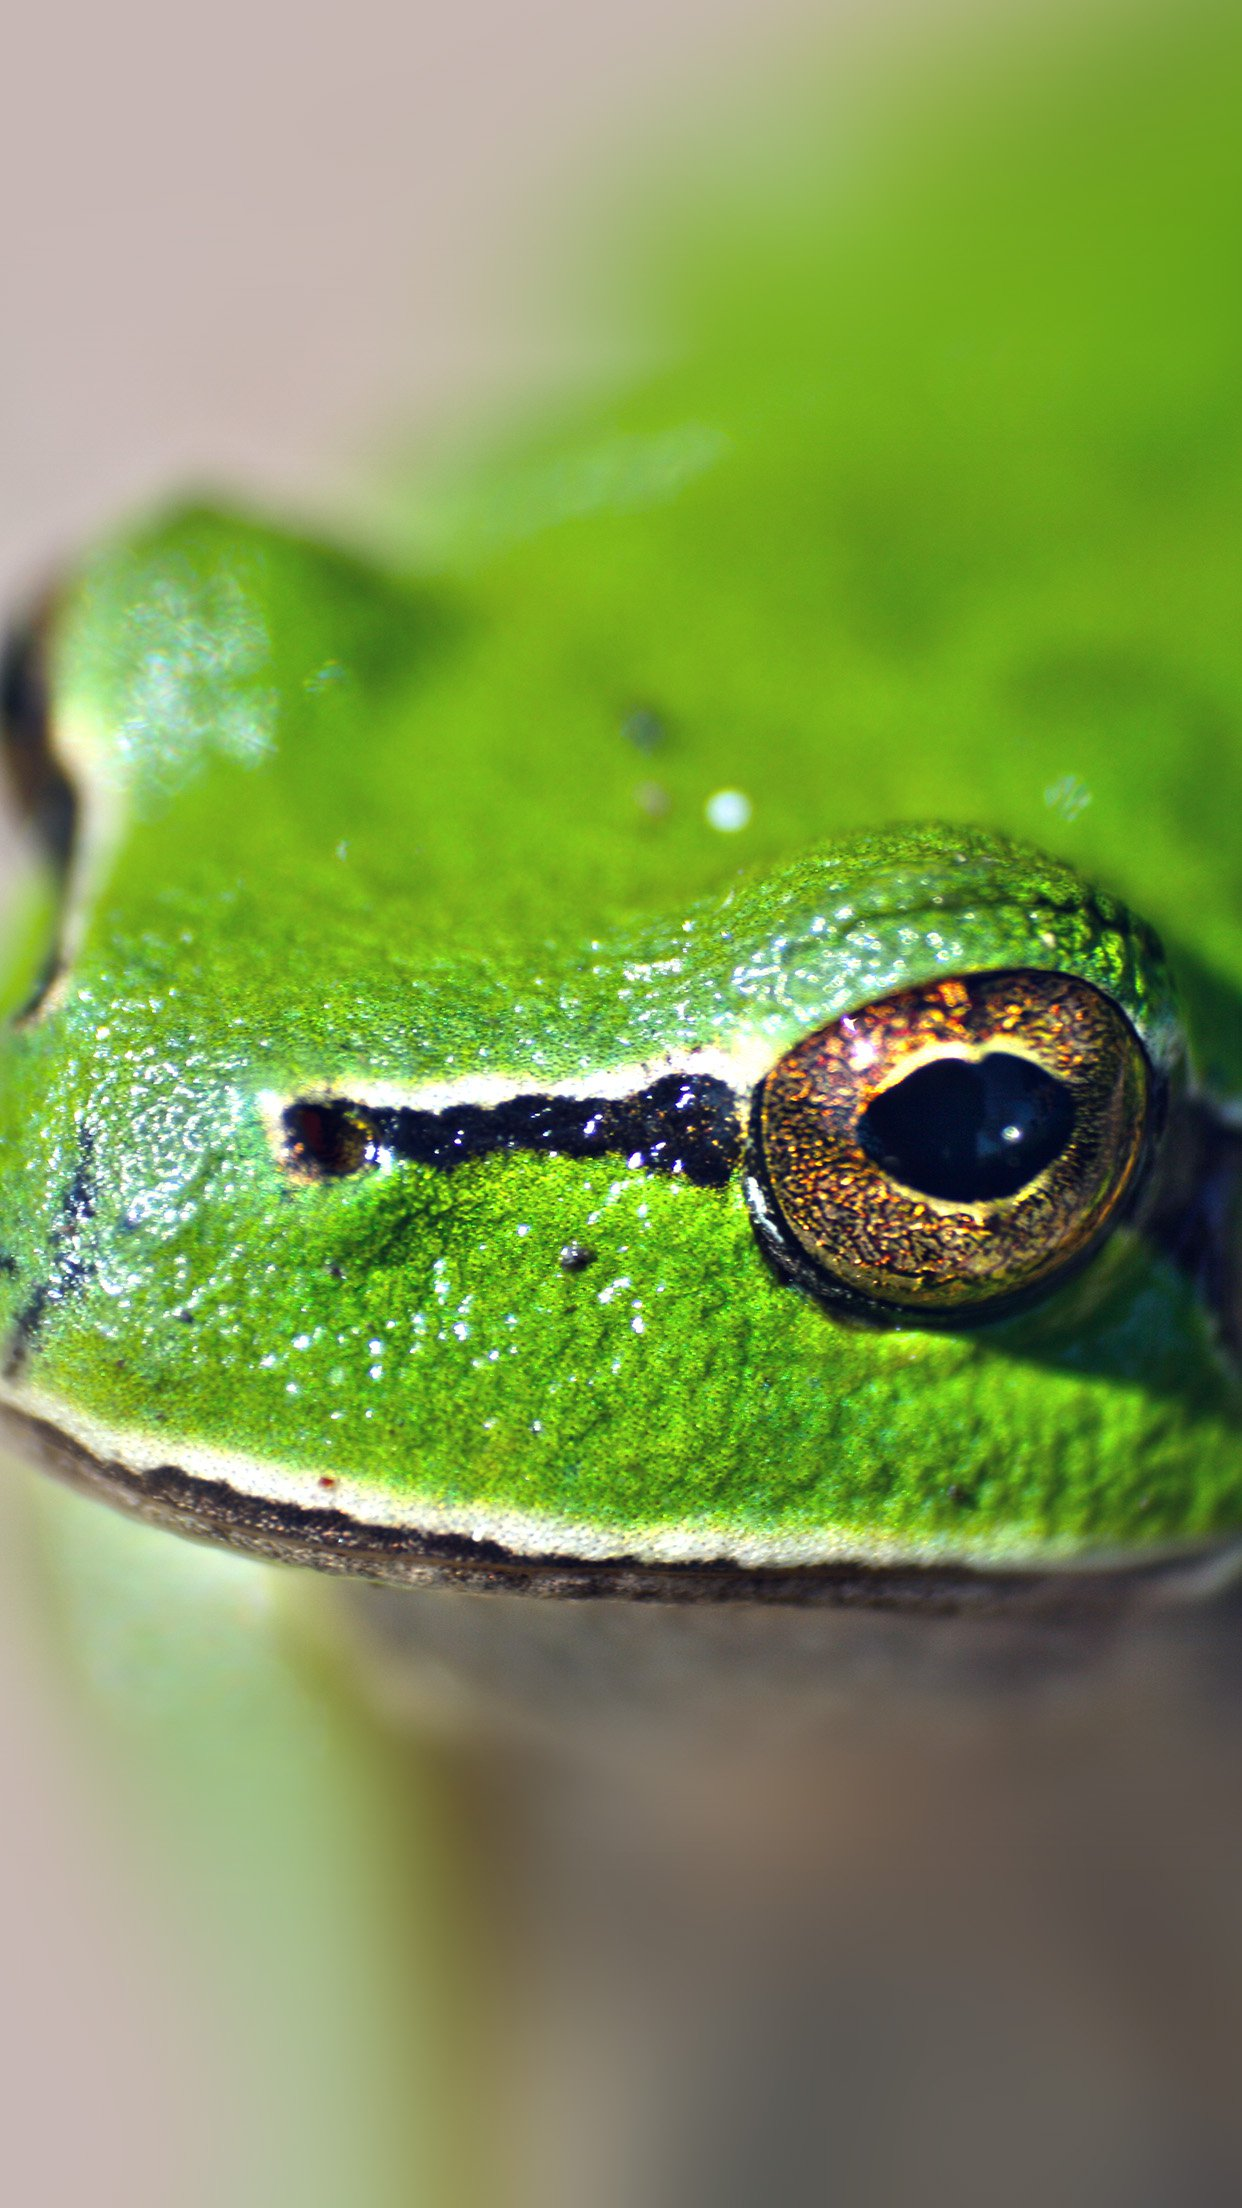 Eyes Frog Animal Lake Nature Android wallpaper